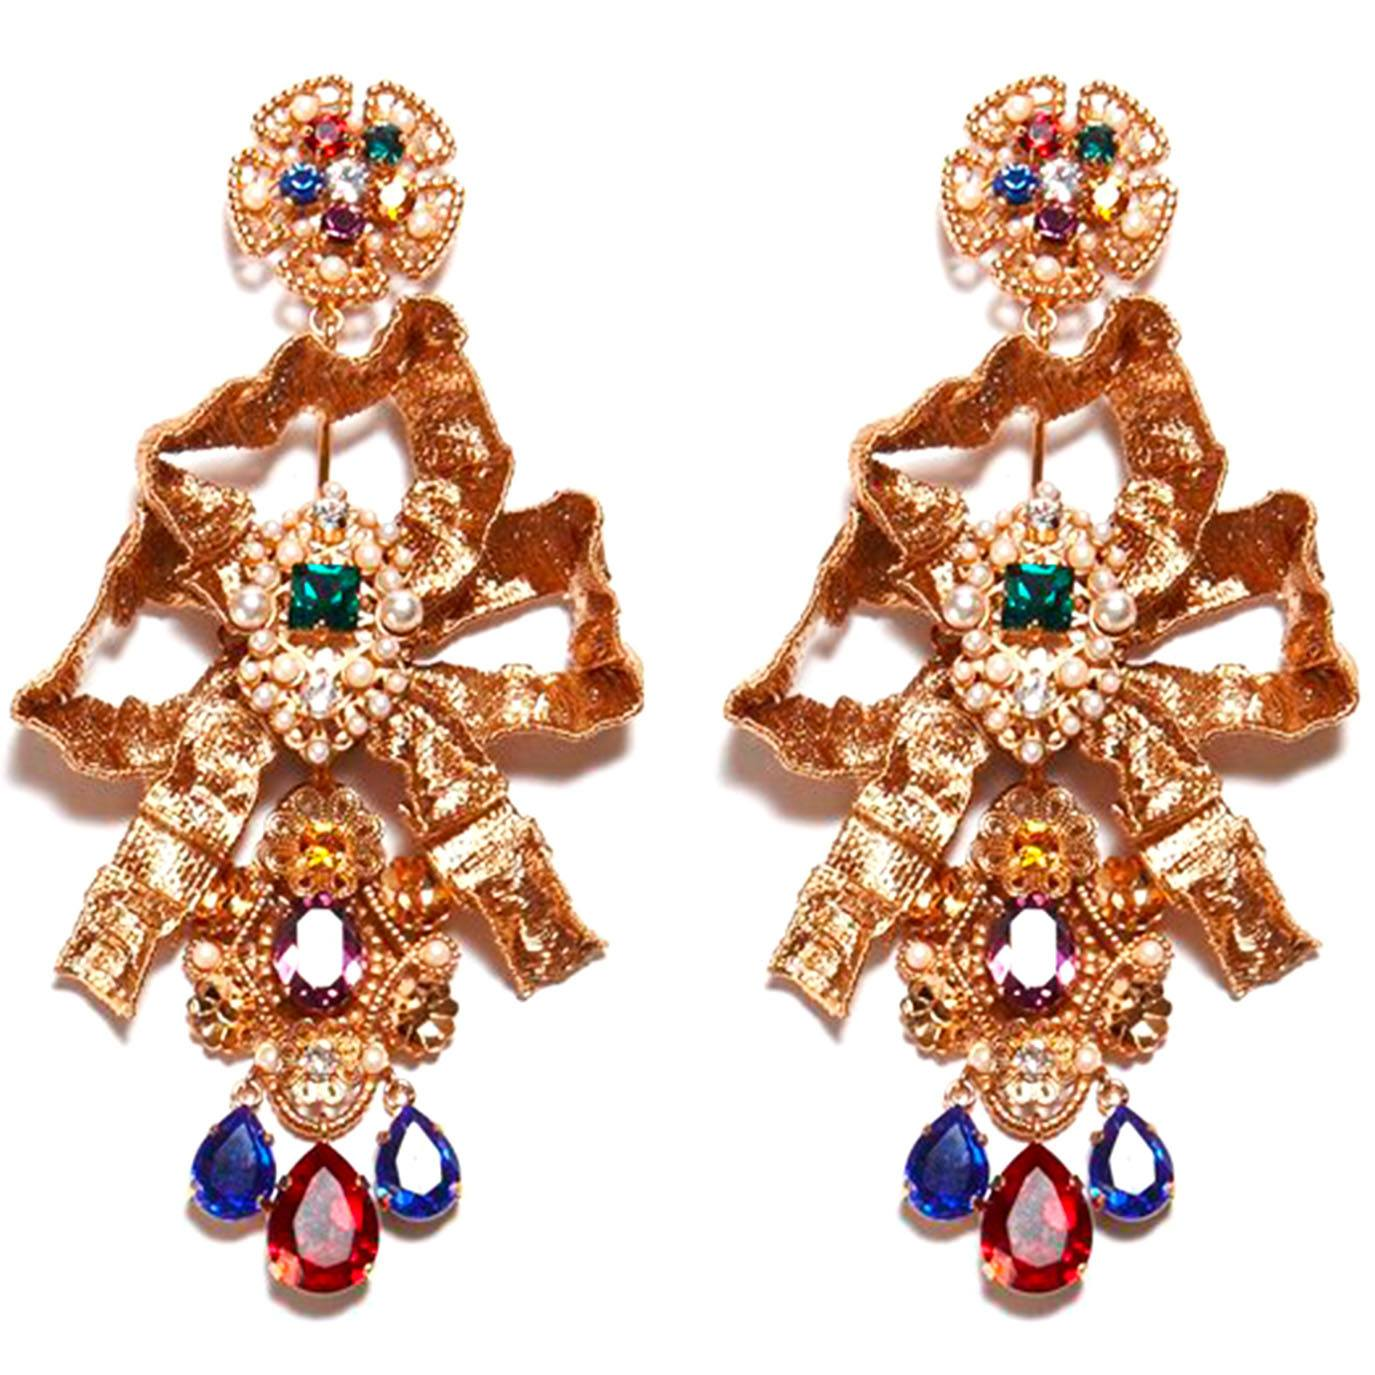 Dolce & Gabbana golden ribbon-shaped earrings with ruby and sapphires from the Spring 2019 Runway Collection